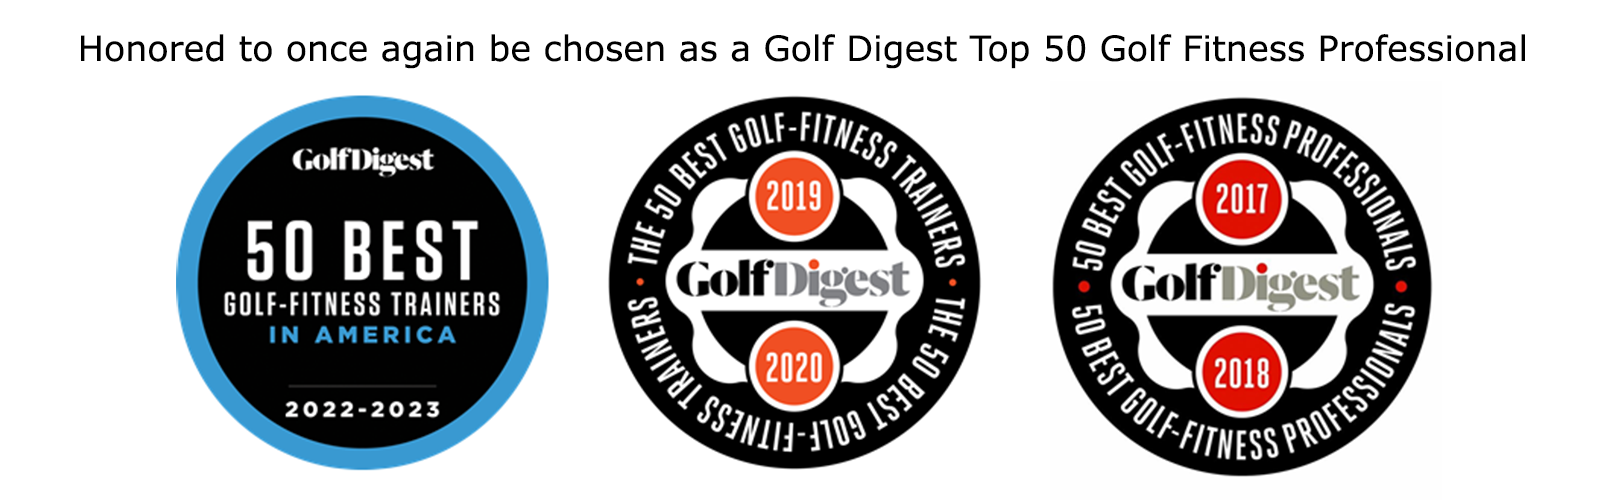 Best Golf Fitness Professionals